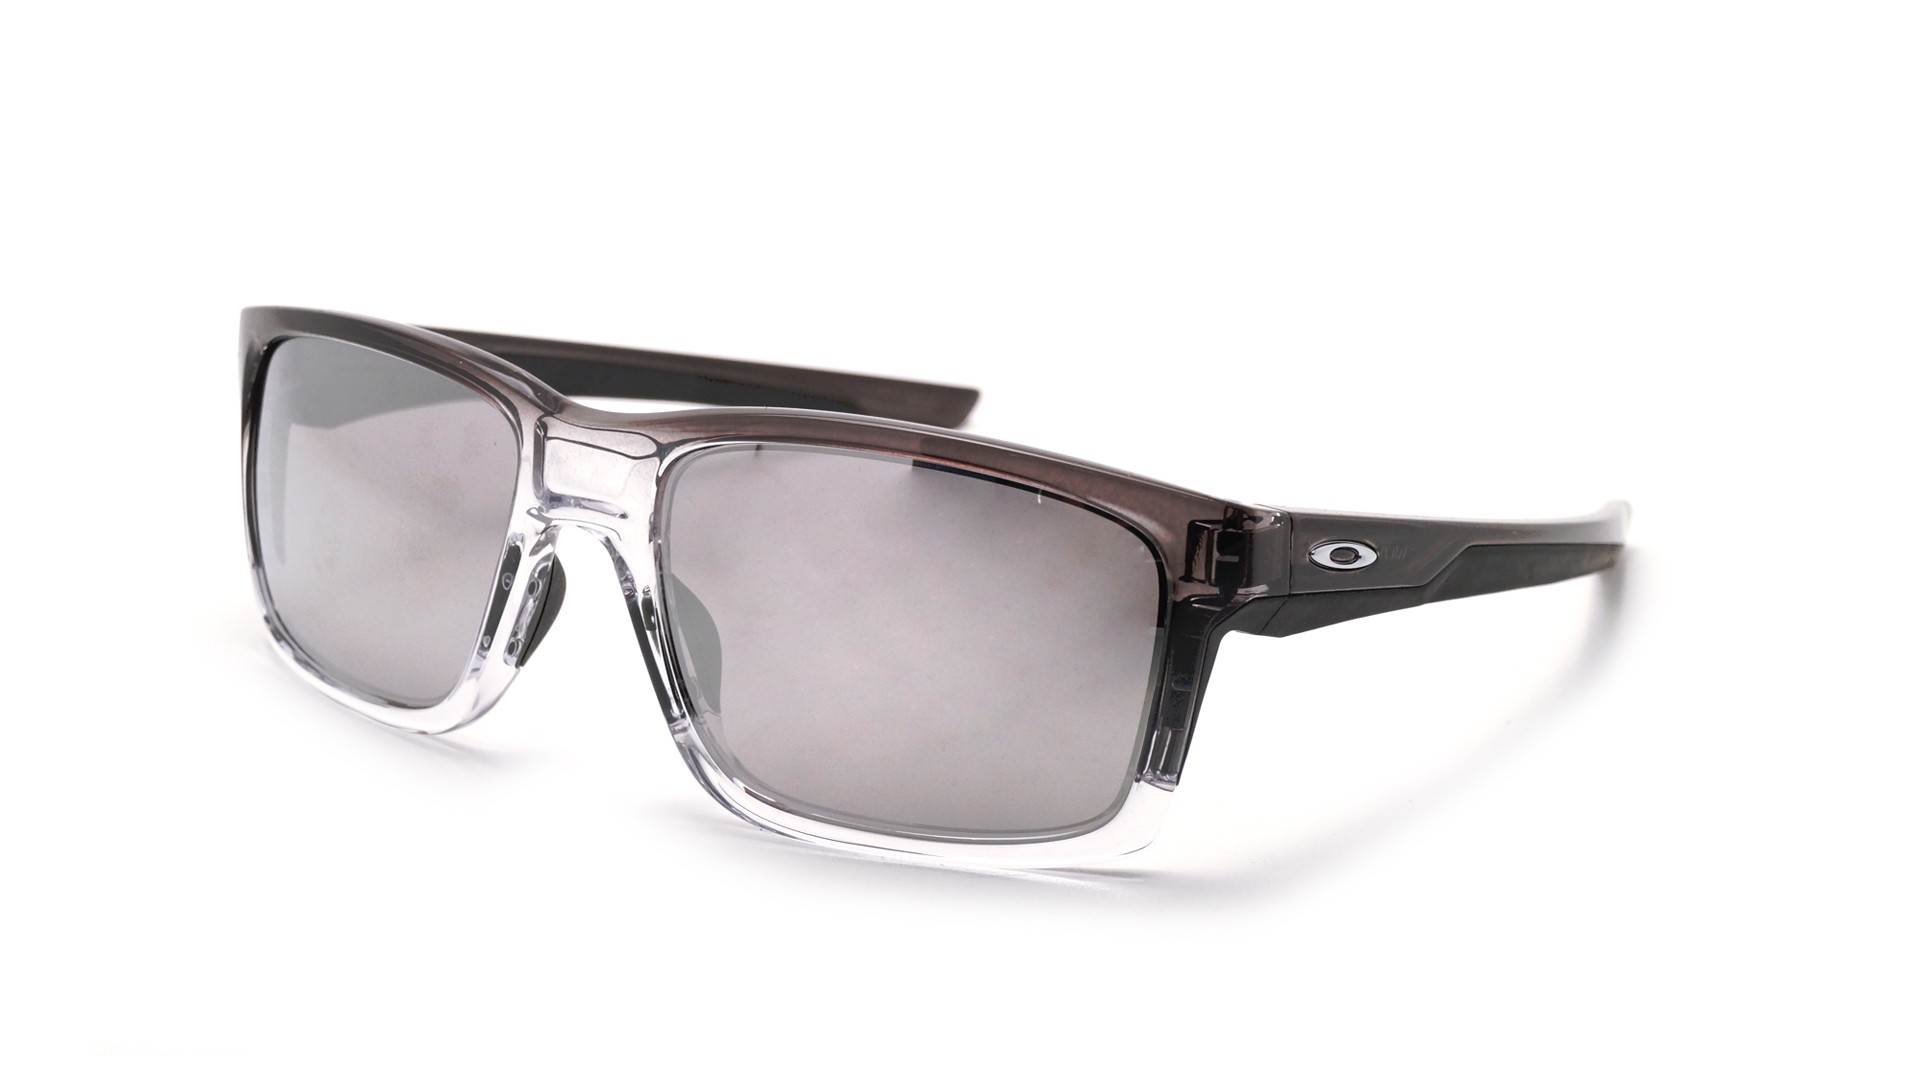 bad216fbf8 Sunglasses Oakley Mainlink Dark ink fade Transparent OO9264 13 57-17 Large  Mirror